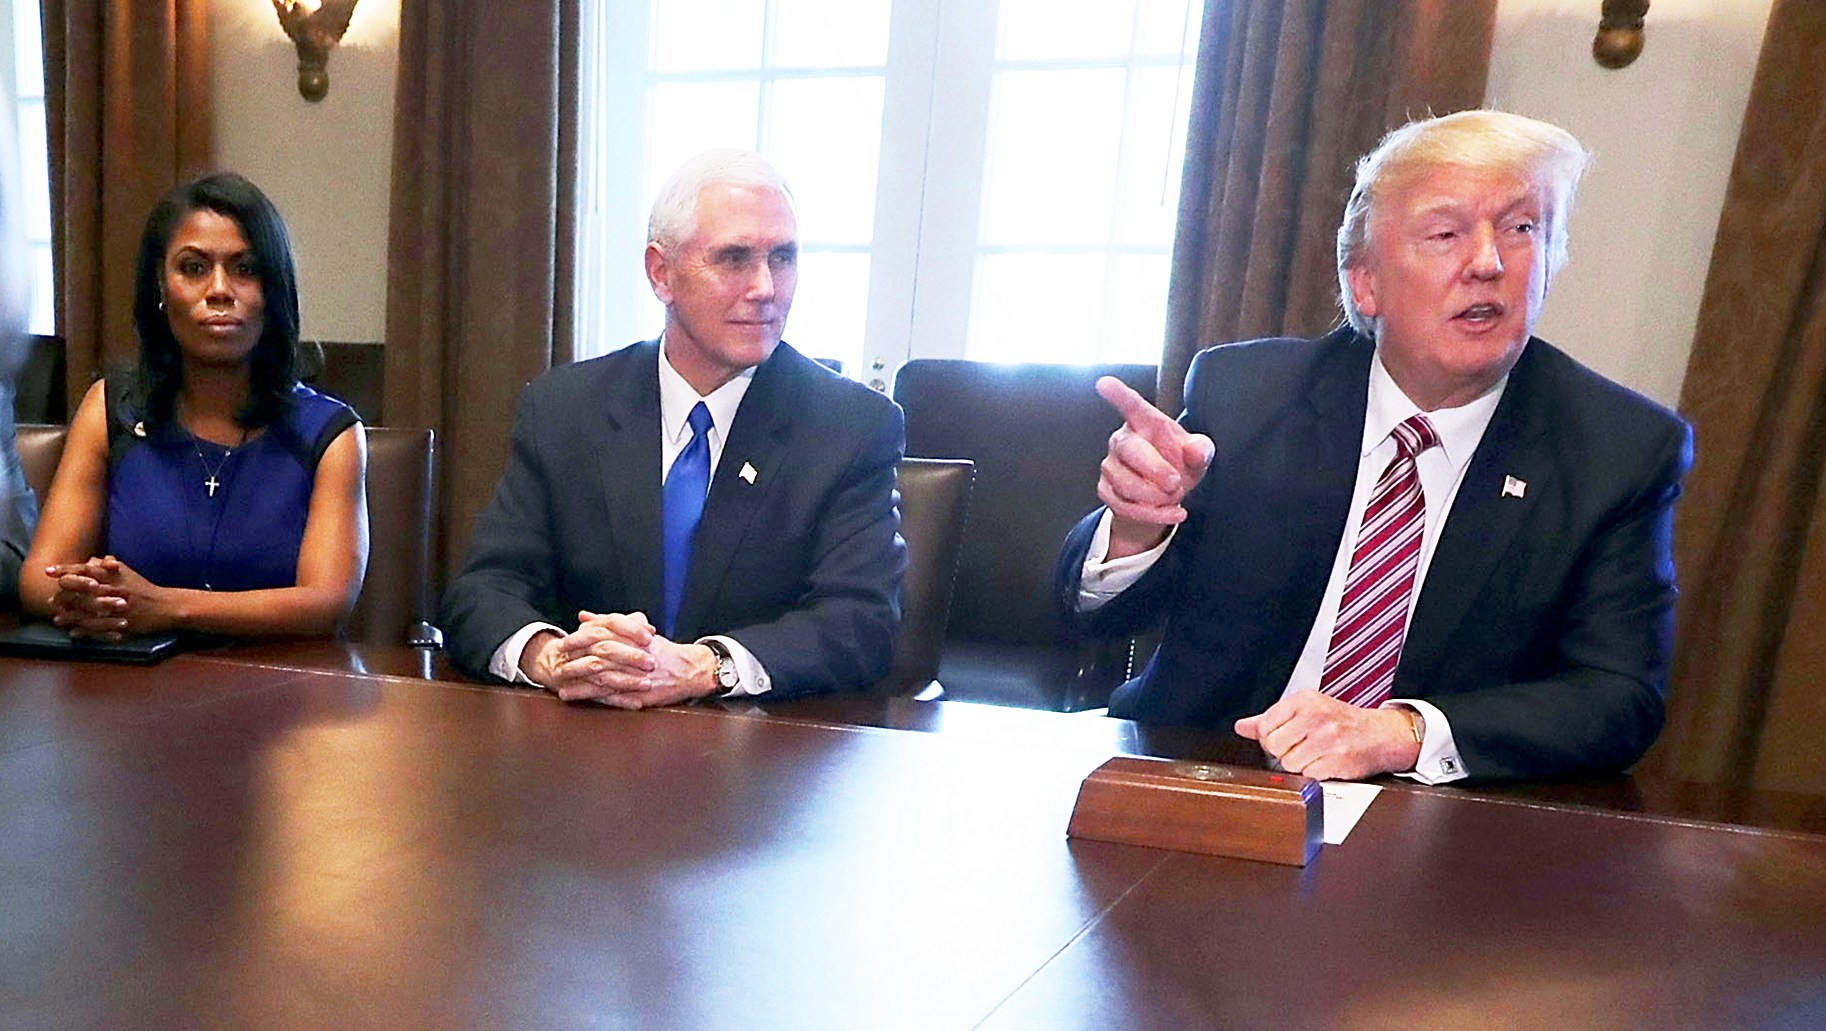 Omarosa Manigault, Mike Pence and Donald Trump during a meeting with the Congressional Black Caucus Executive Committee in the Cabinet Room at the White House March 22, 2017 in Washington, DC.